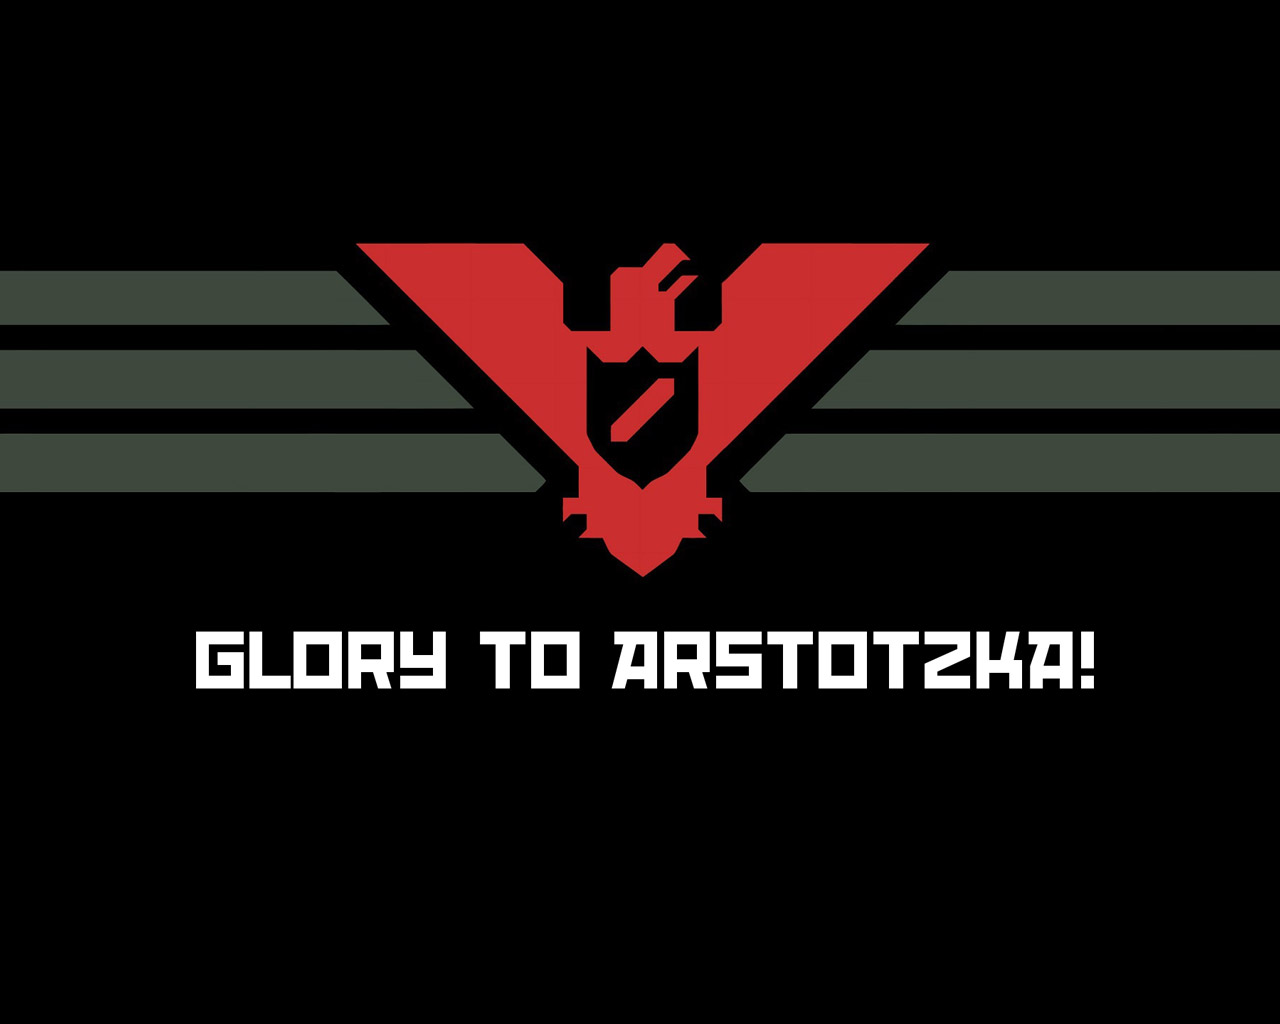 Free Papers, Please Wallpaper in 1280x1024